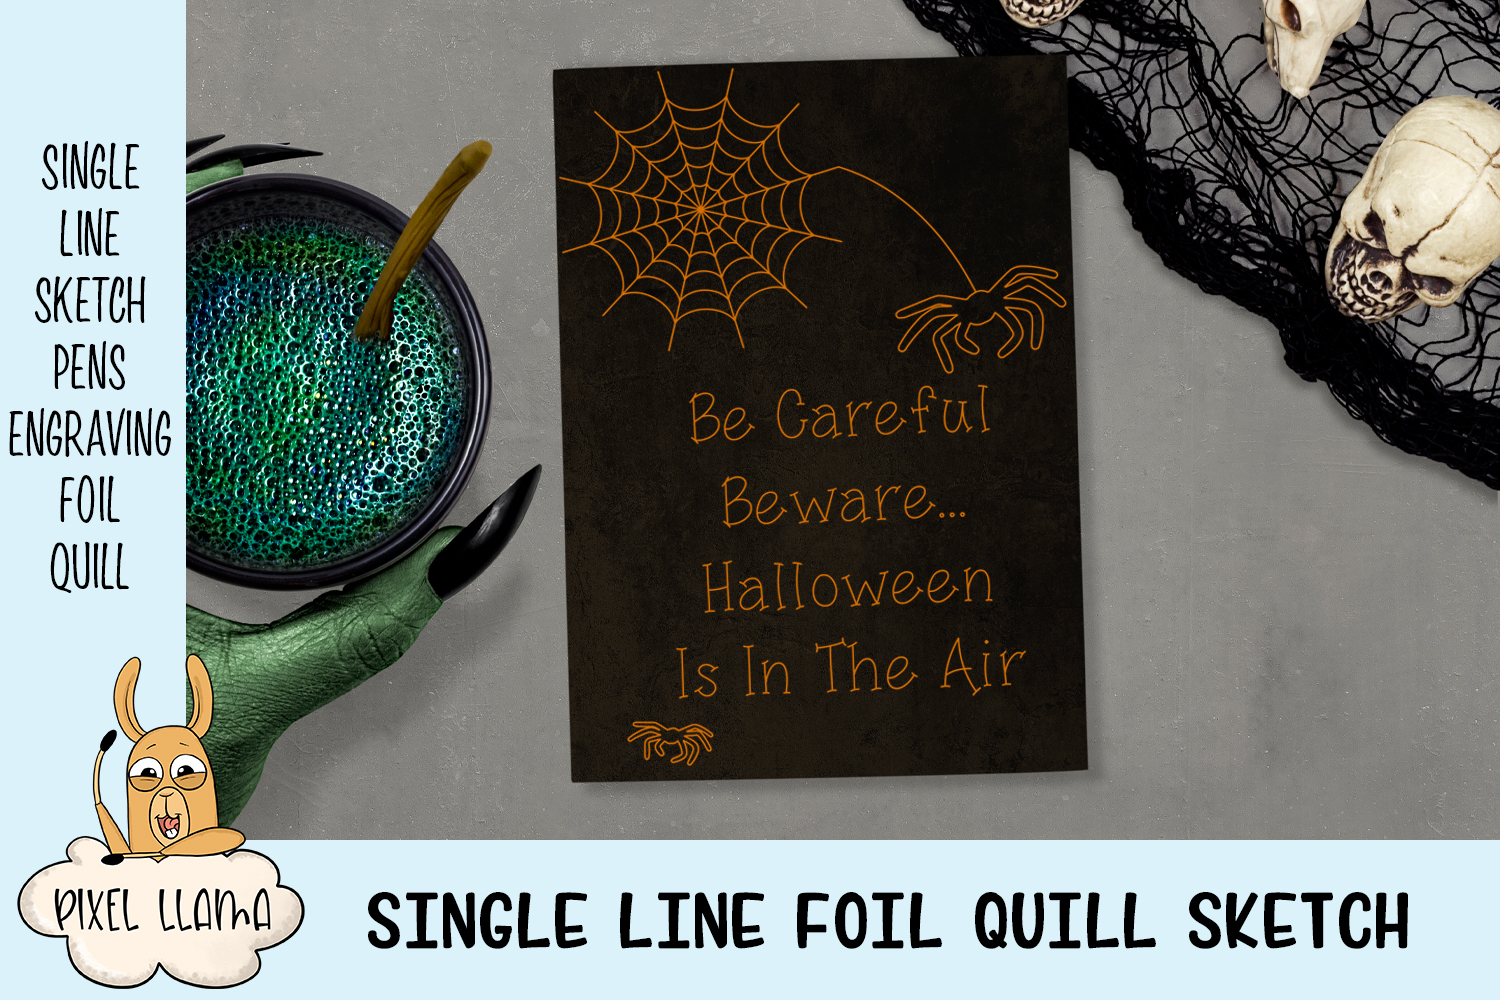 Be Careful Beware Halloween Single Line Sketch Foil Quill example image 1